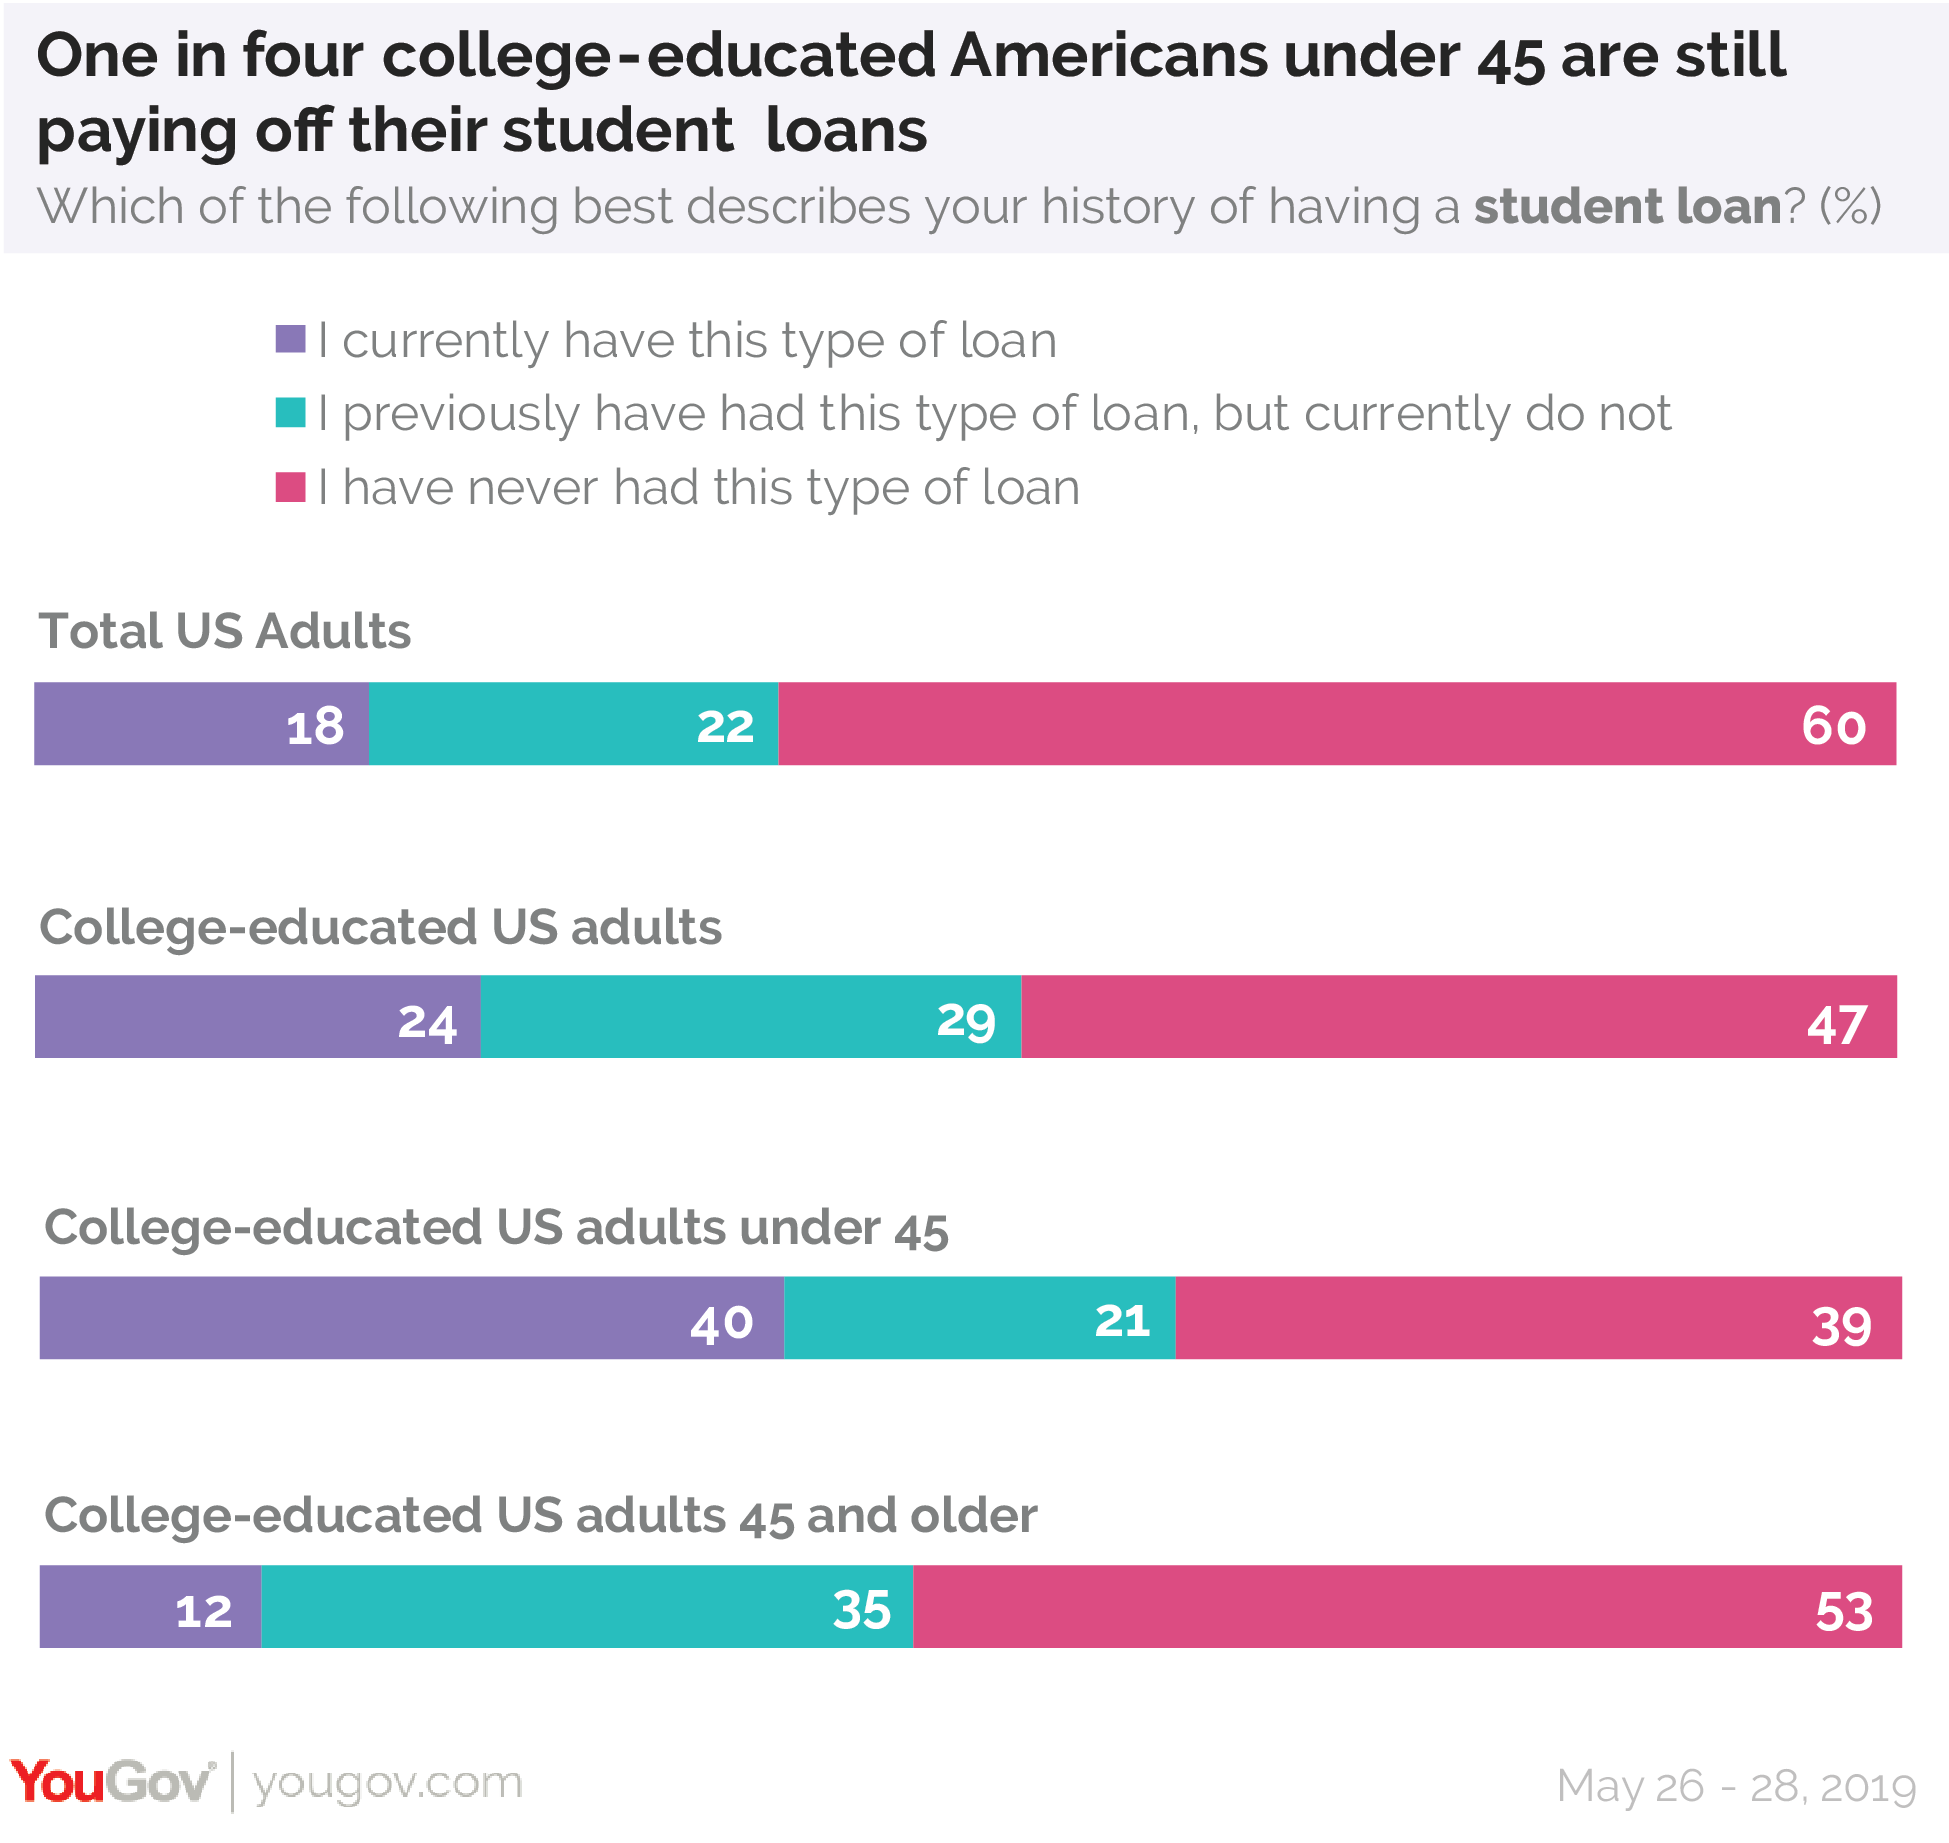 One in four college-educated Americans under 45 are still paying off their student loans